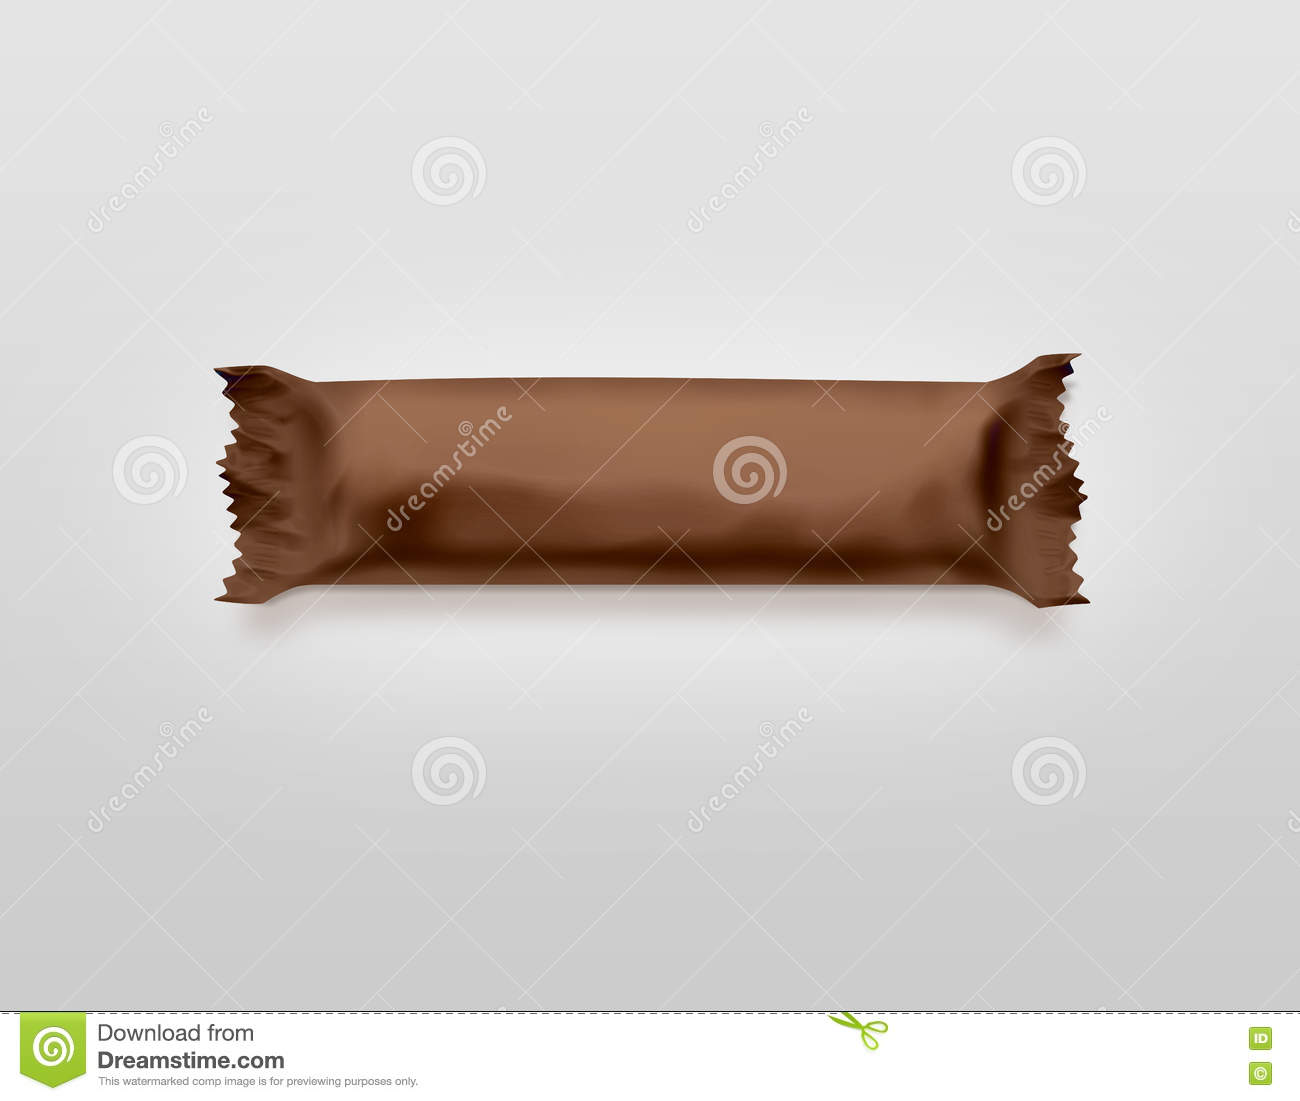 Blank Brown Candy Bar Plastic Wrap Mockup Isolated Stock Image